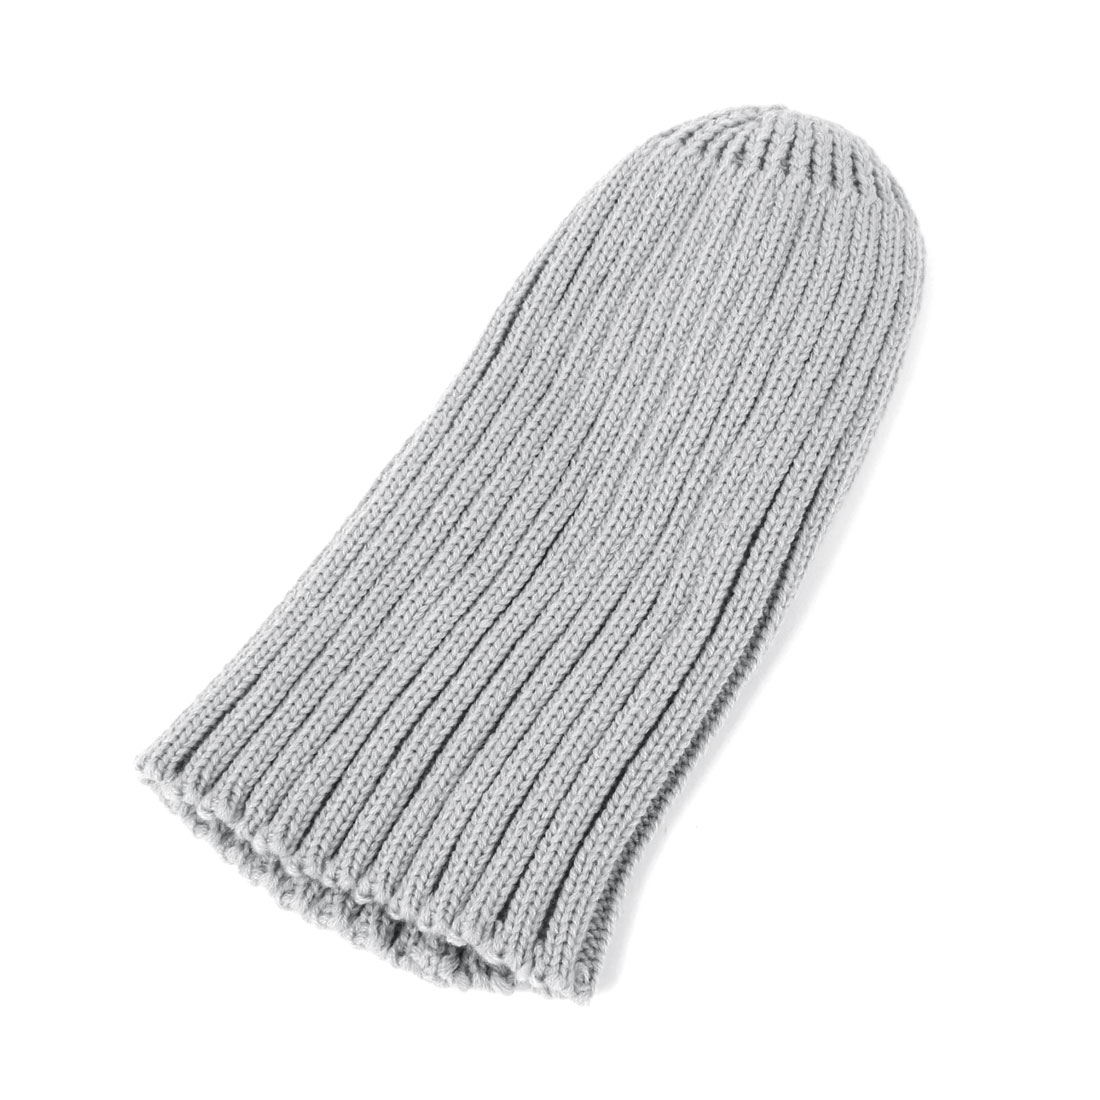 Light Gray Ribbed Pattern Acrylic Winter Warm Knit Beanie Hat for Man